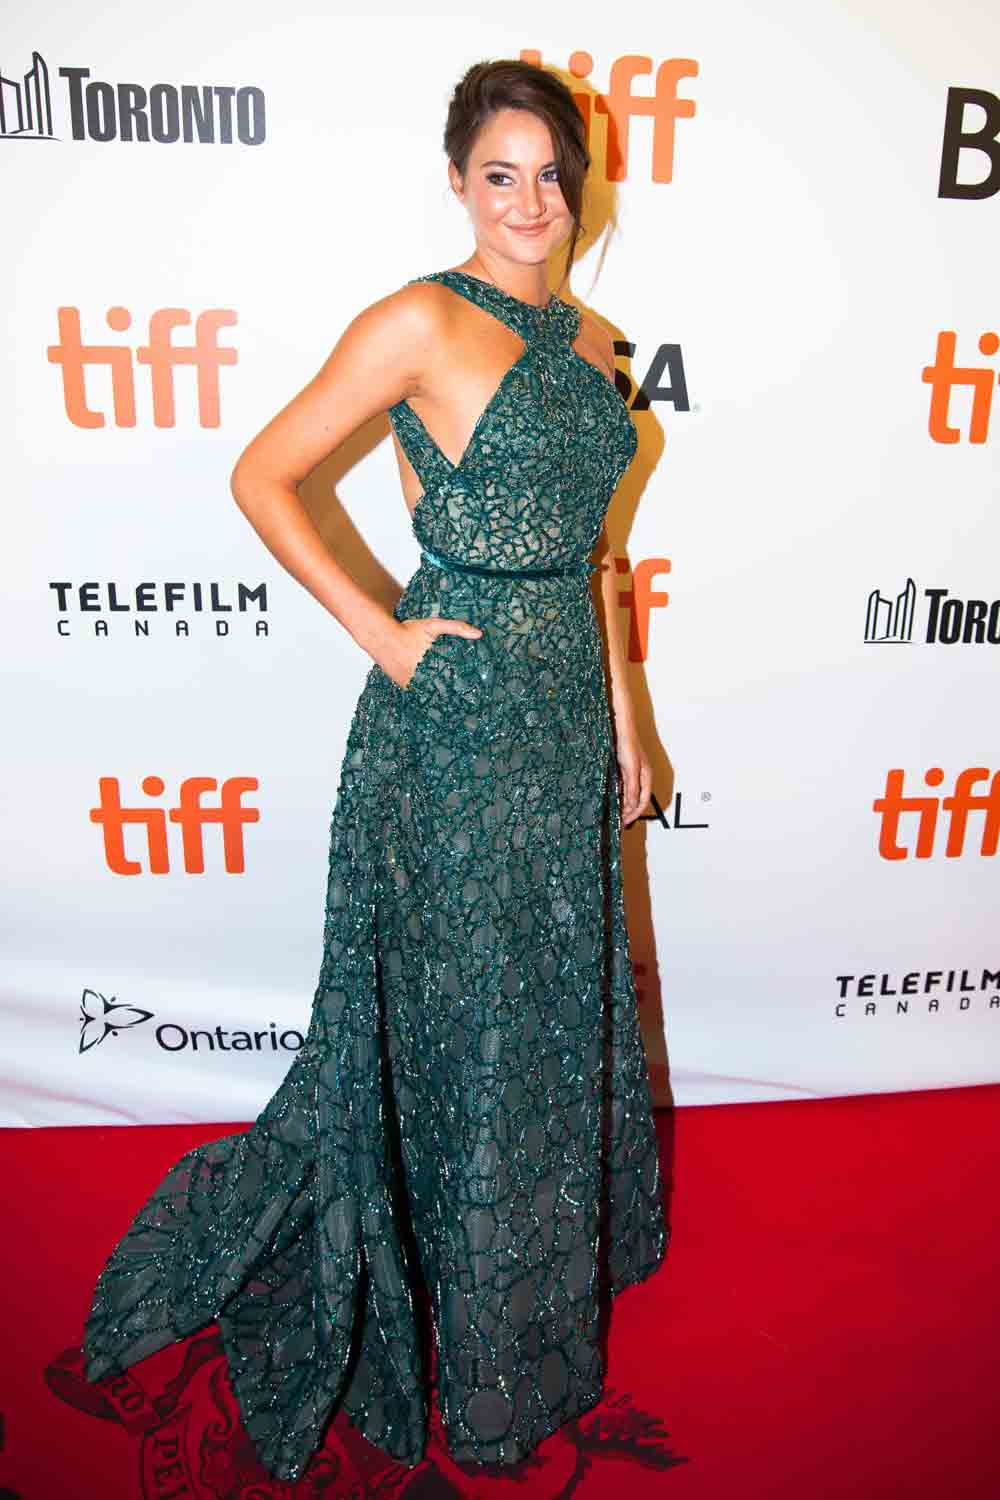 The dress he wore toronto - Toronto International Film Festival 2016 The Best Dressed Marie Claire